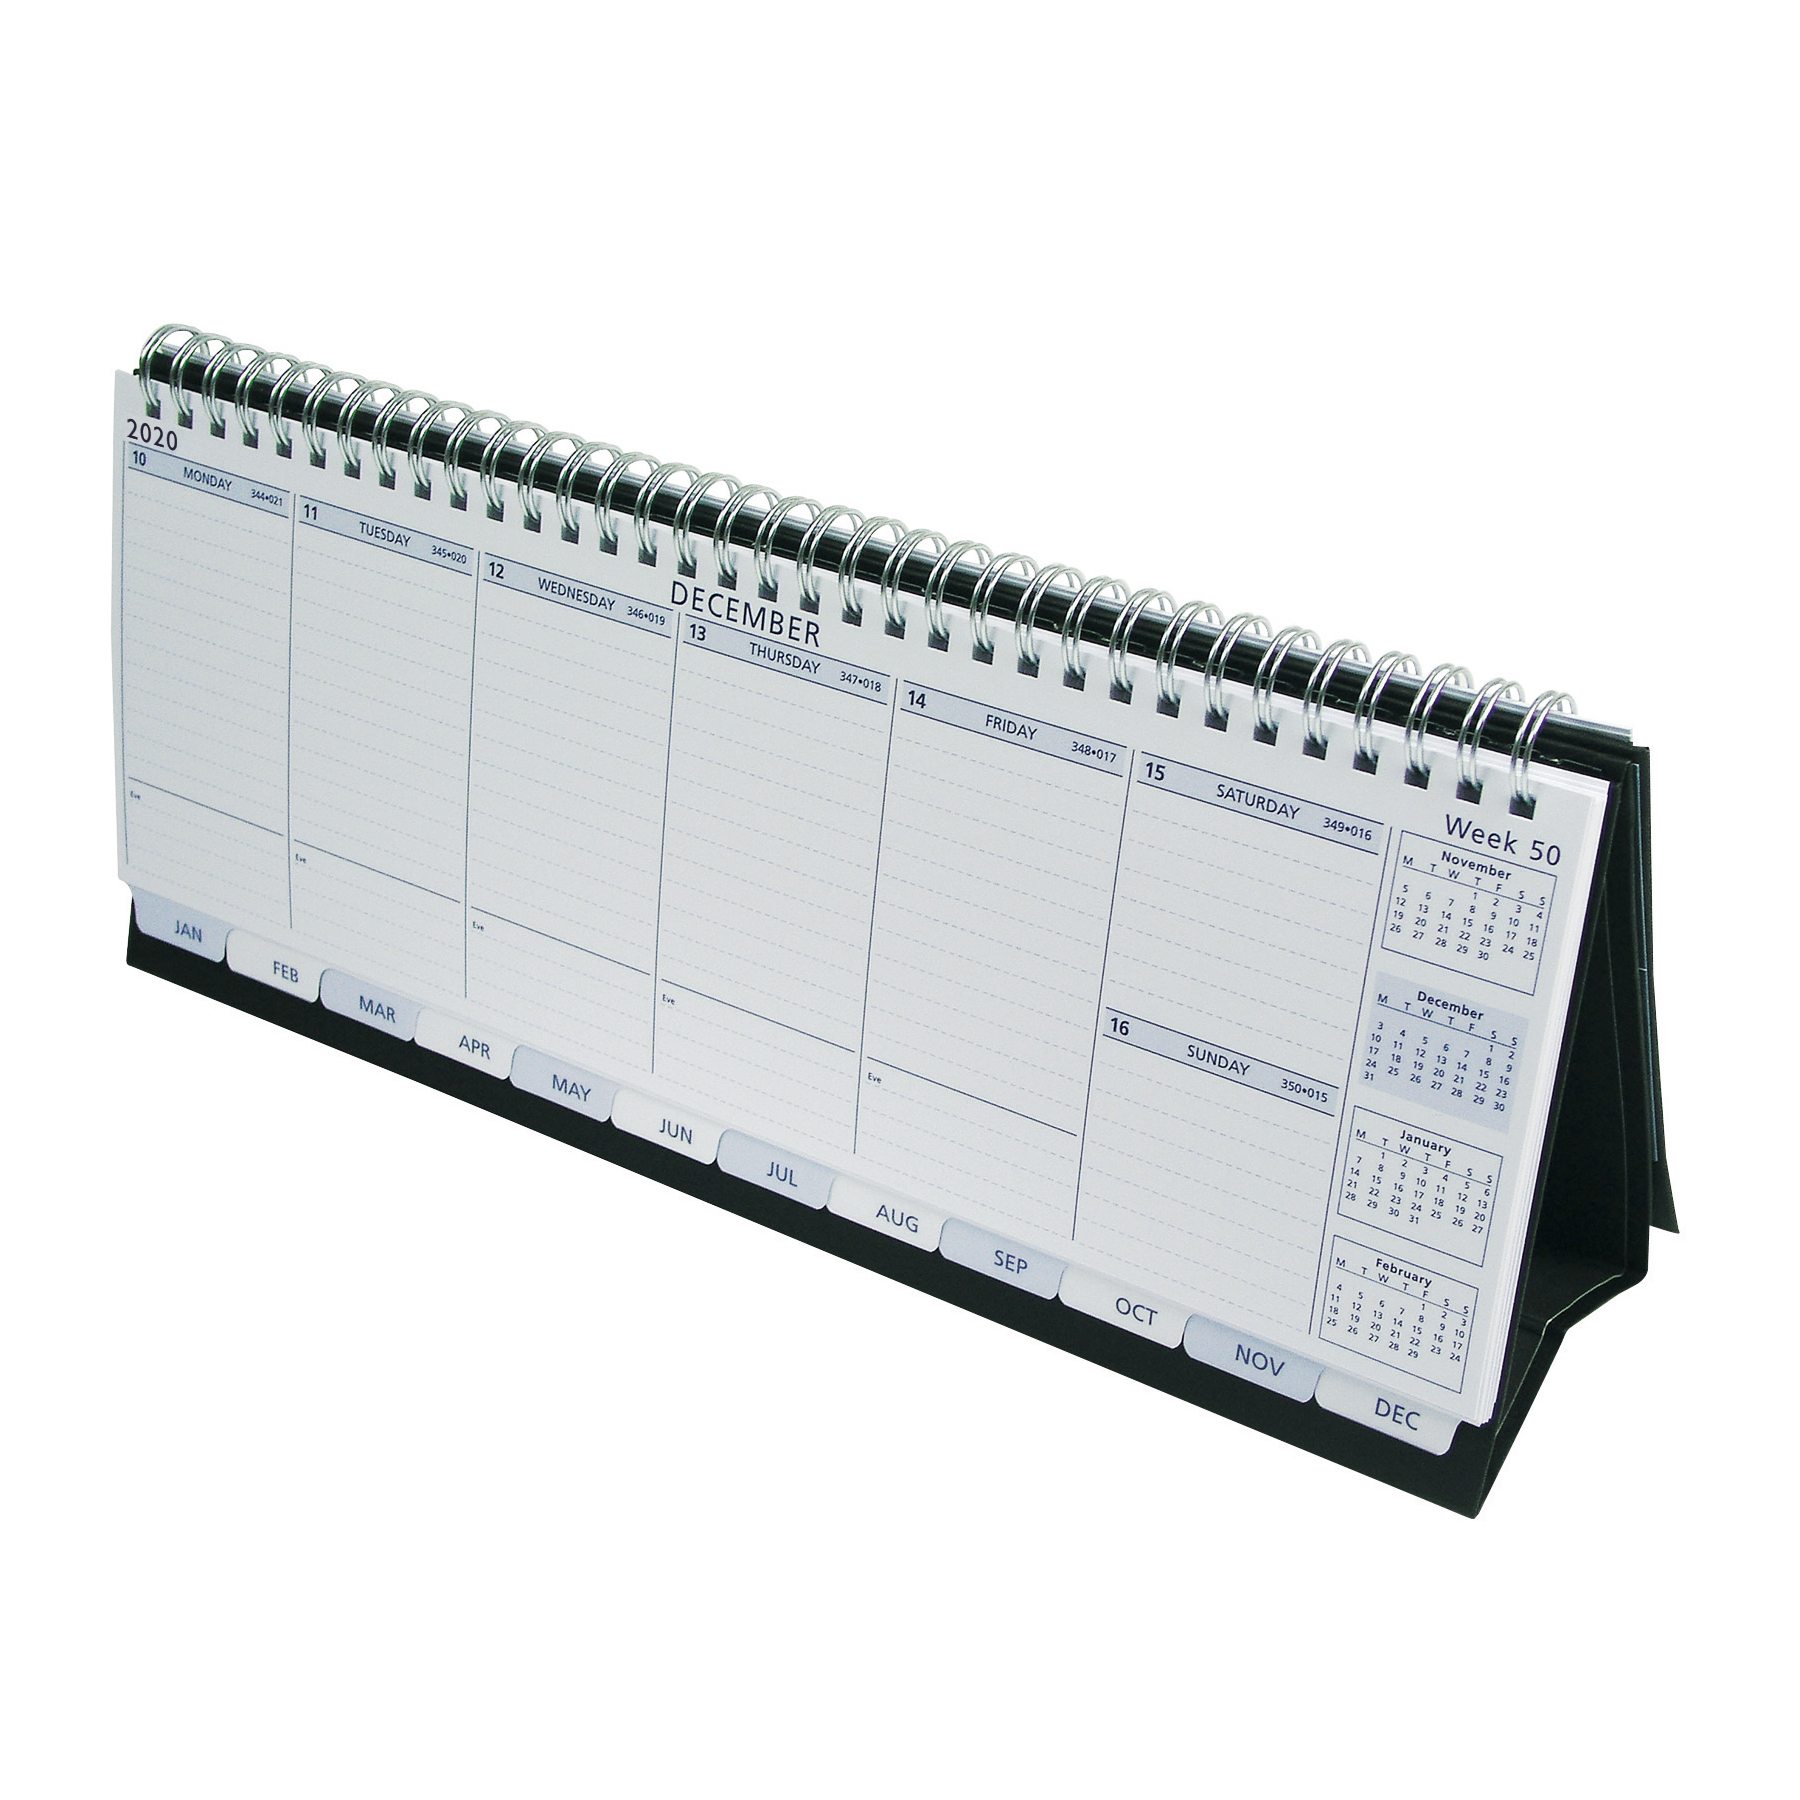 Collins Colplan 2020 Deskline Planner Week to View Landscape 115x300mm White/Black Ref CDL1 2020